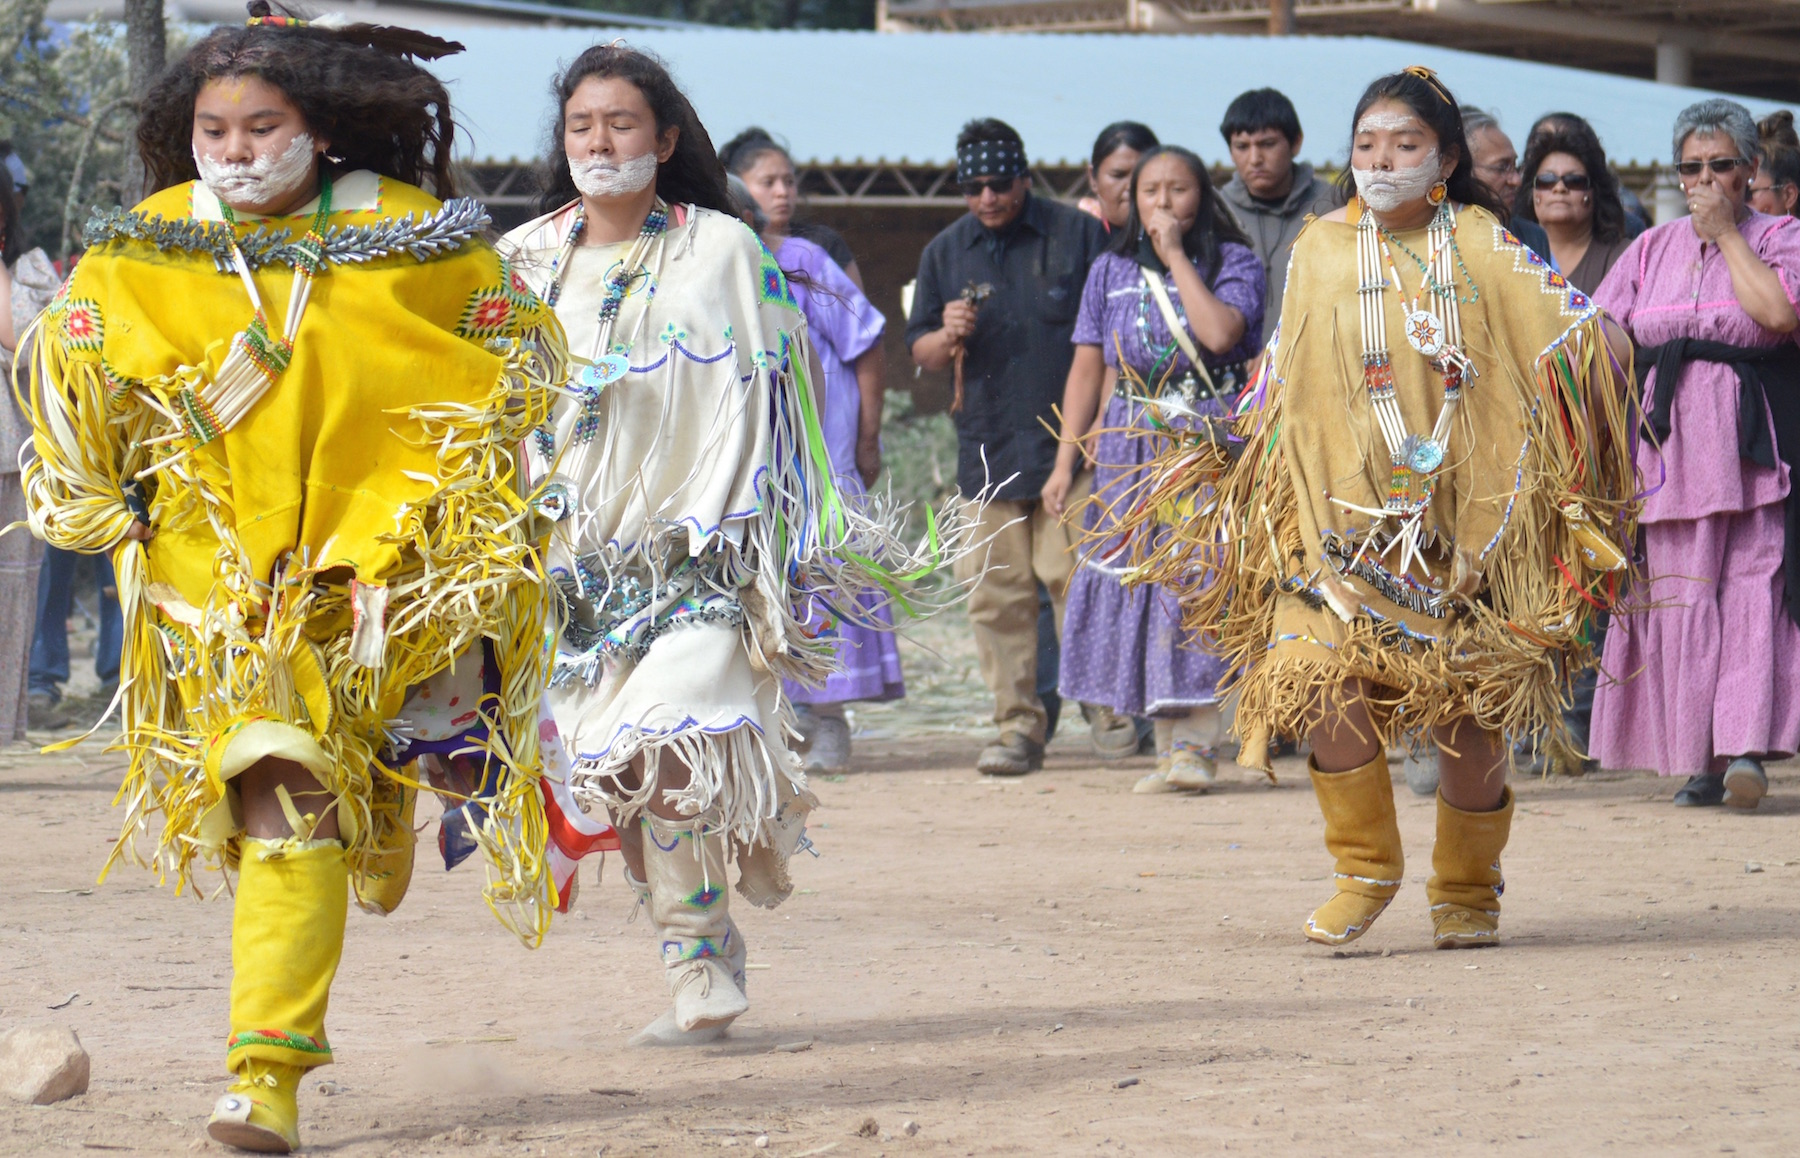 Every Independence Day at the Mescalero Apache tribal lands in New Mexico, the public is invited to witness the tribe's traditional puberty rites, a series of rituals deeply connected to the Apache deity White Painted Lady. Photo credit:  indiancountrymedianetwork.com